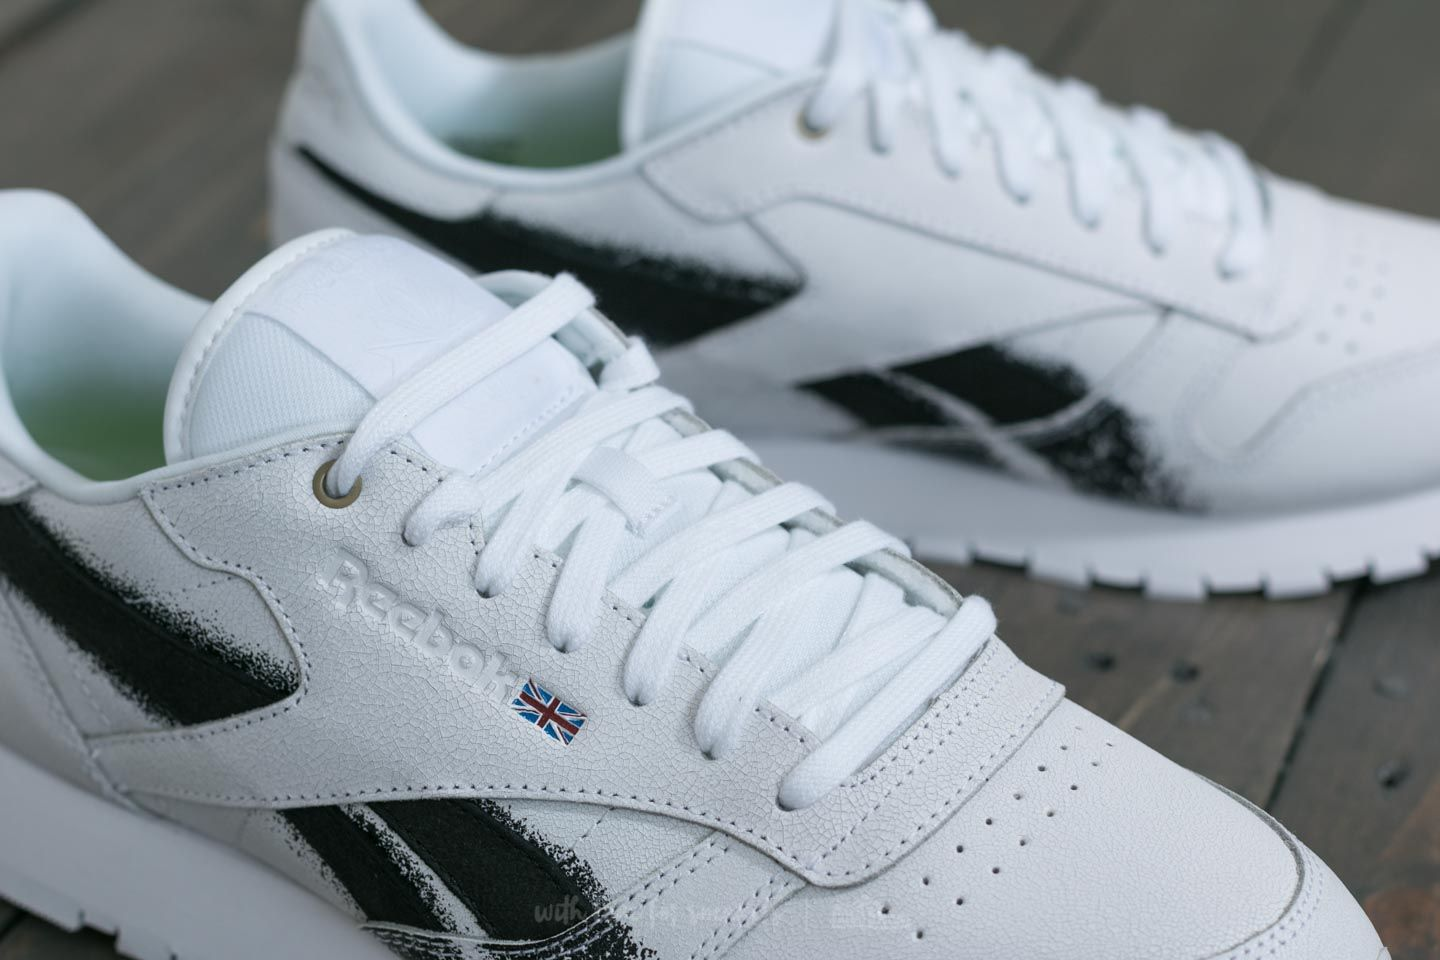 Reebok x Montana Cans Classic Leather White Black   Footshop